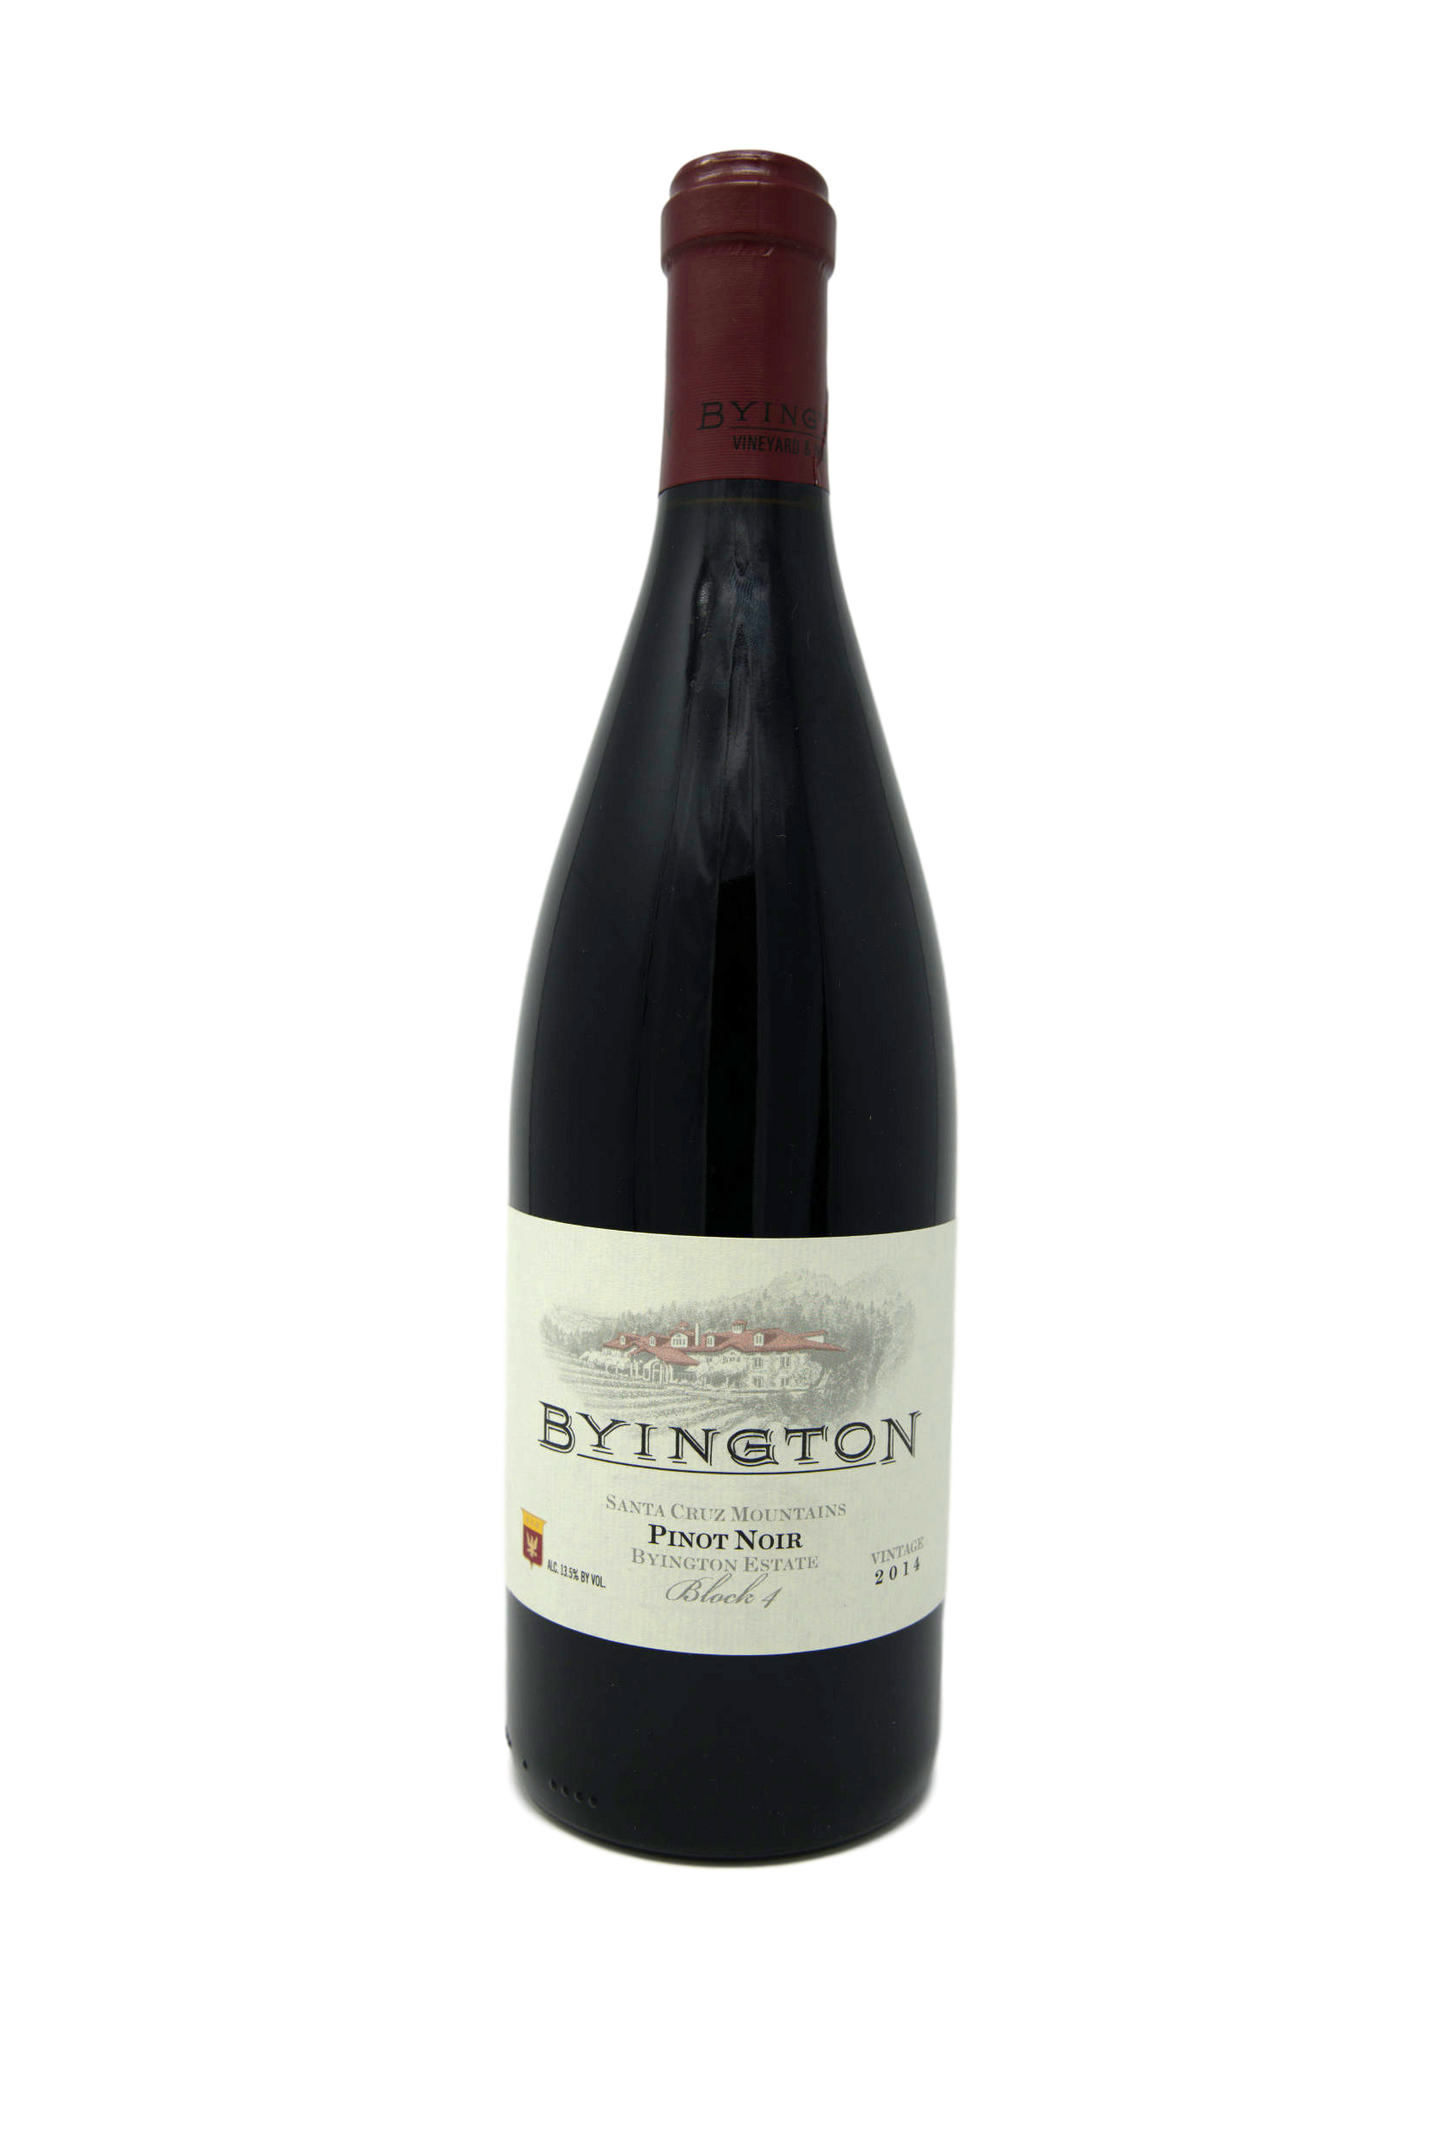 2014 BYINGTON PINOT NOIR ESTATE BLOCK 4 - Byington Winery